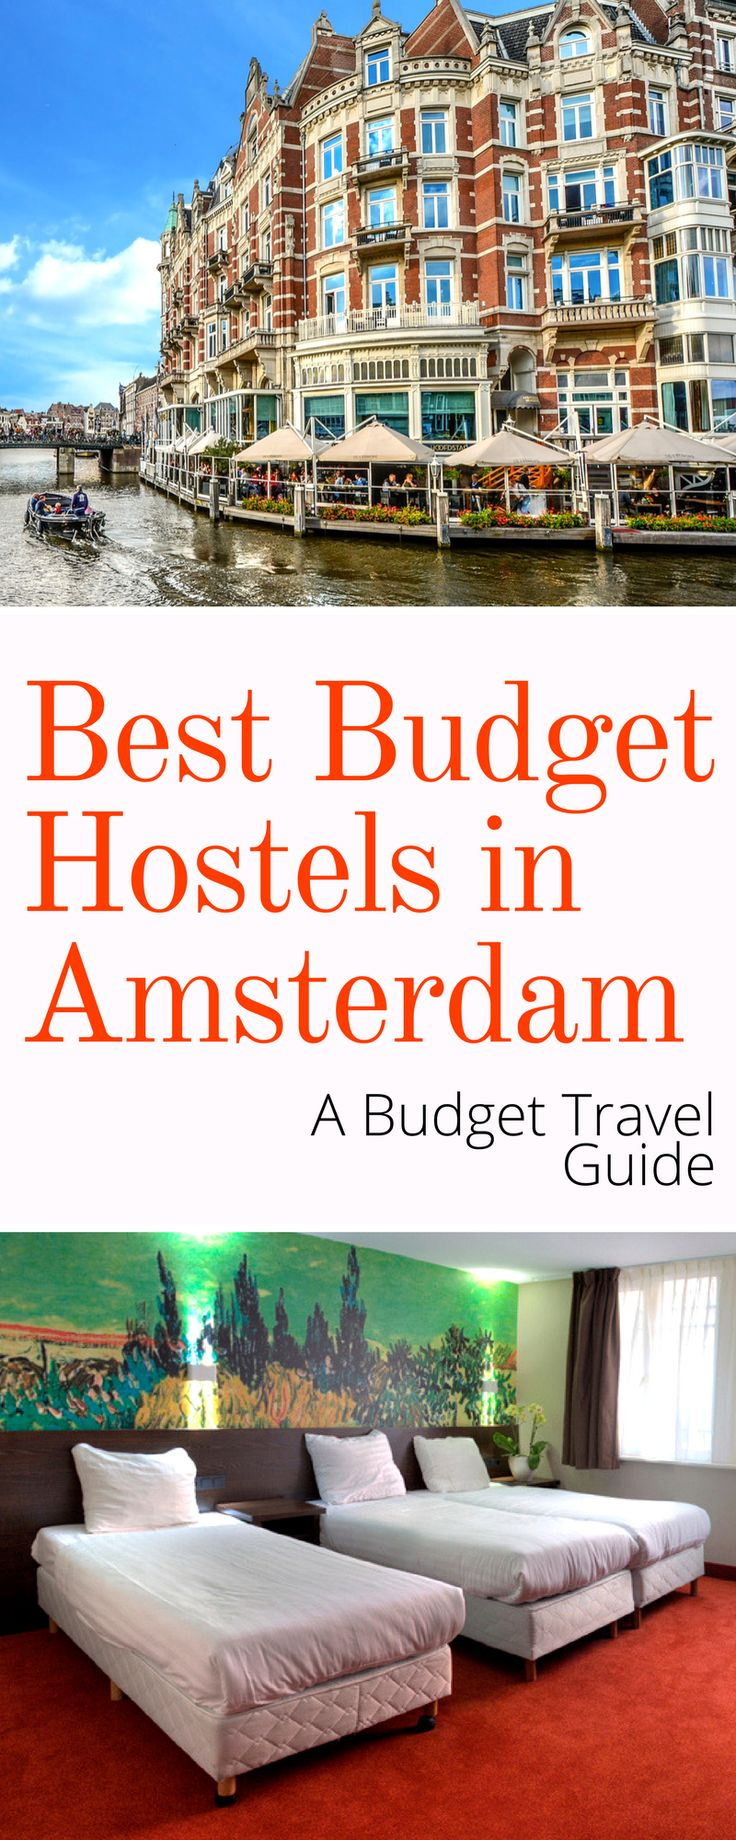 Budget Travel Guide: The Best Budget Hostels in Amsterdam Netherlands. Amsterdam isn't exactly budget friendly but with our guide to the best hostels you'll be able to spend your precious travel dollars/euros/etc where it counts!